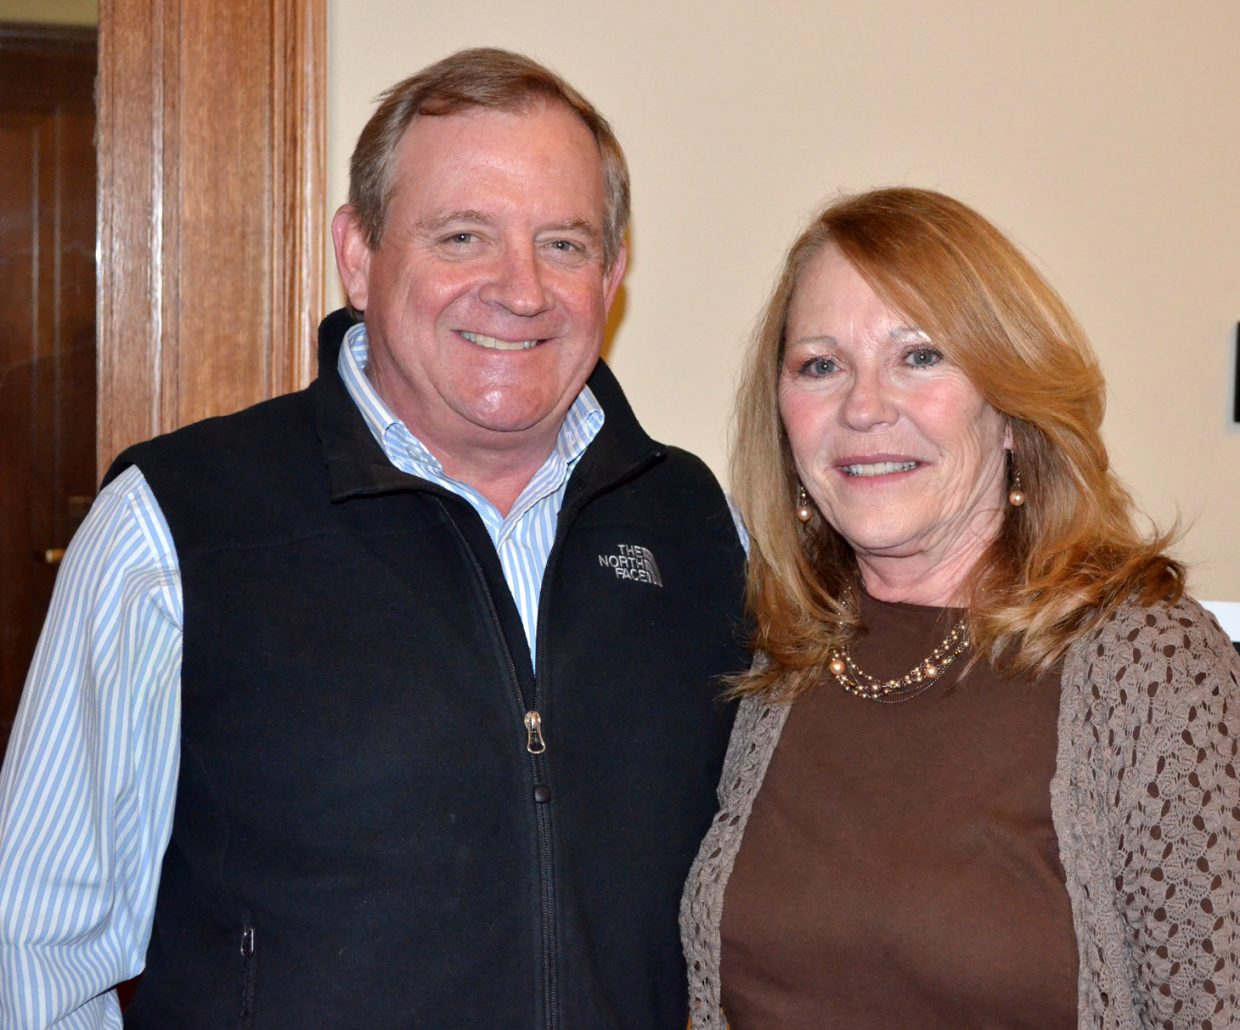 Outgoing Routt County Commissioner Steve Ivancie and retiring Clerk and Recorder Kay Weinland were honored during a reception Monday night at the courthouse. Weinland is leaving Routt County after 20 years in her post to retire to St. George, Utah.